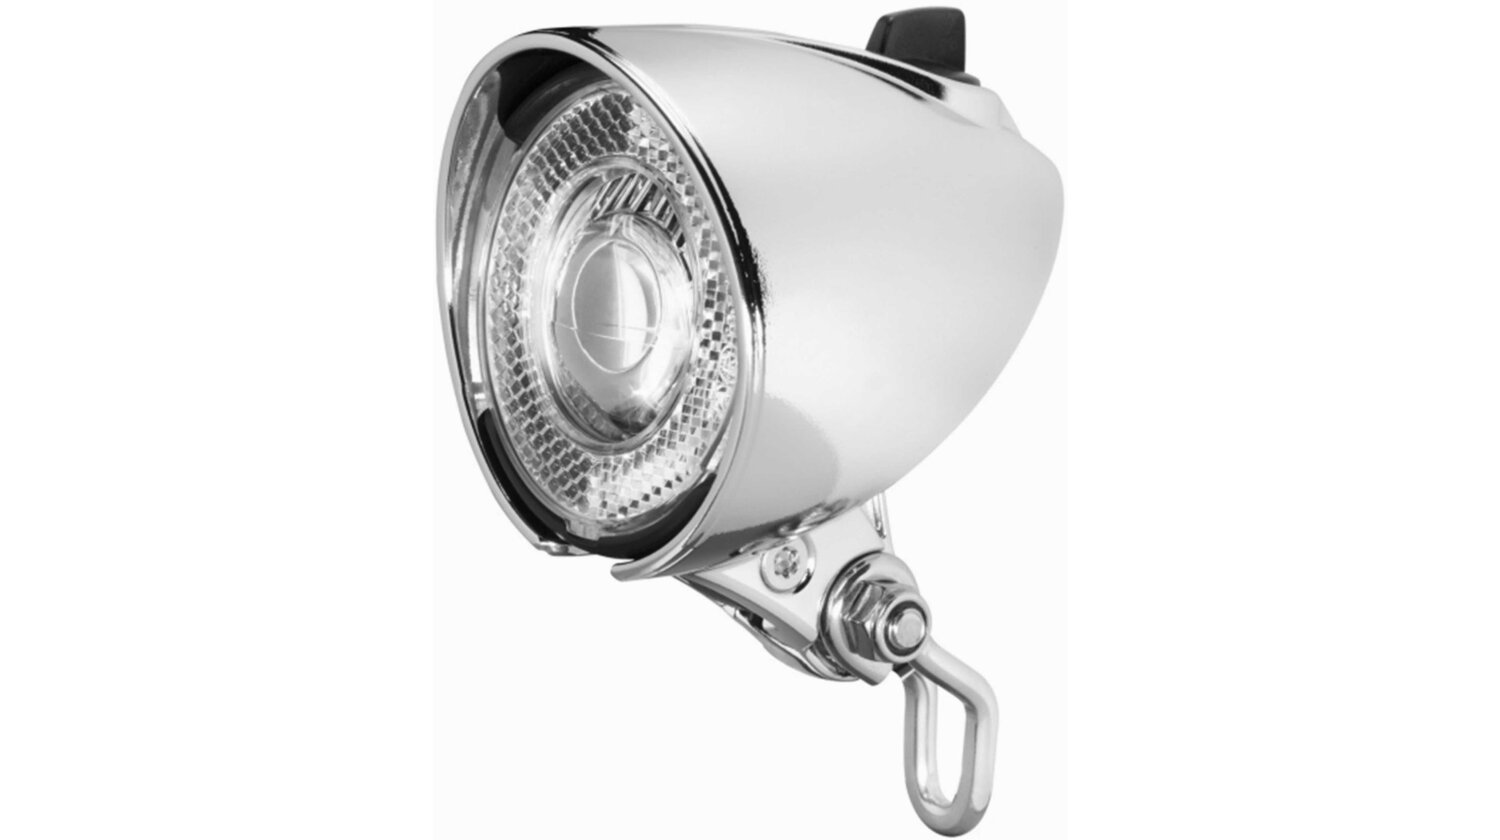 Busch & Müller Lumotec Classic N LED Frontlampe